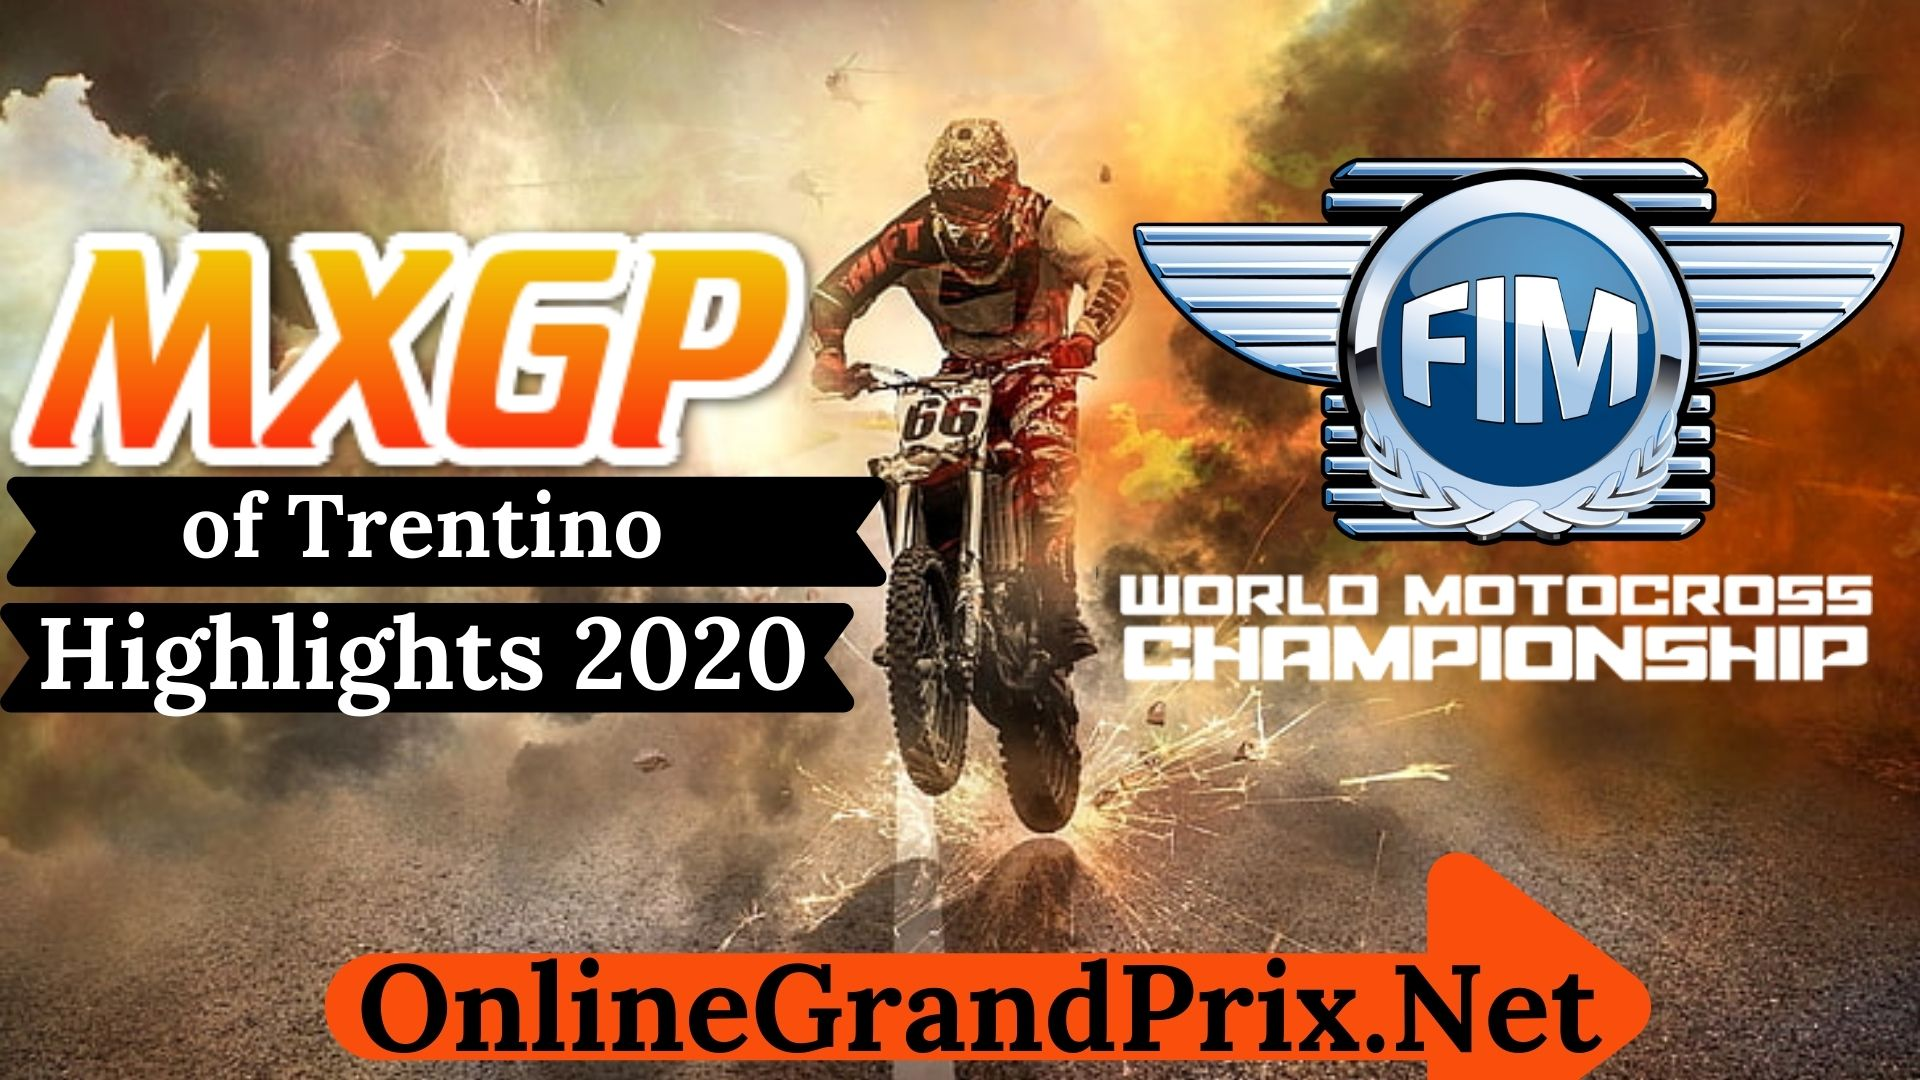 MXGP of Trentino Highlights 2020